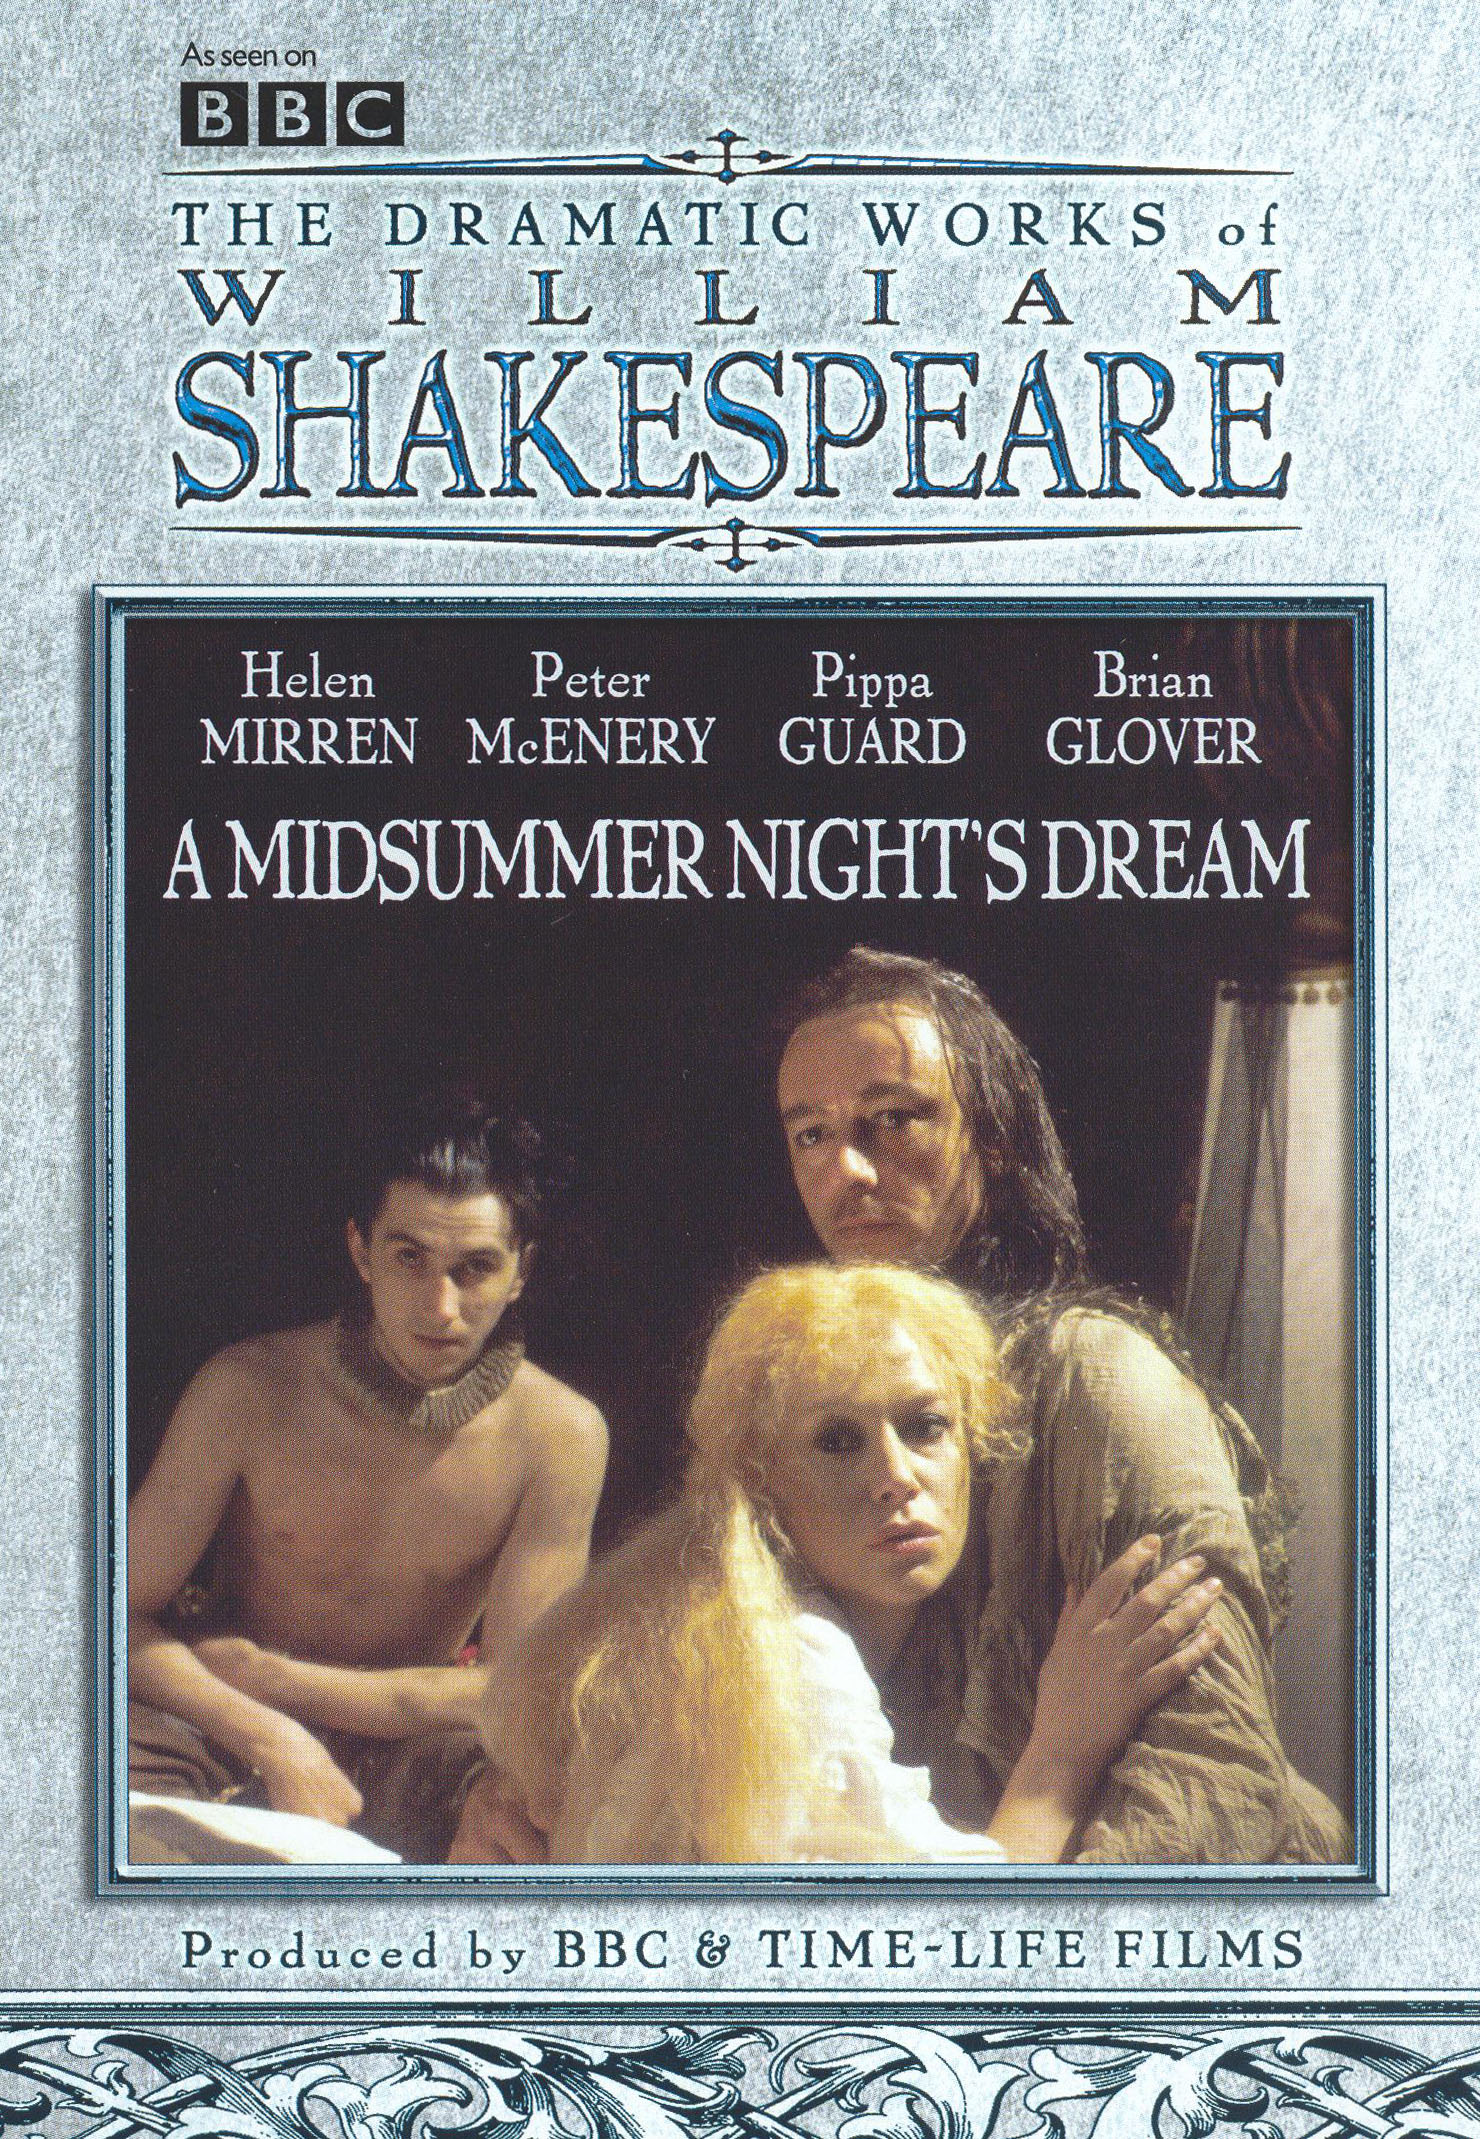 a midsummer night's dream movie reveiw - kevin kline's movie a midsummer night's dream theatre students are often told what not to prepare for an audition because some pieces have been done so many.